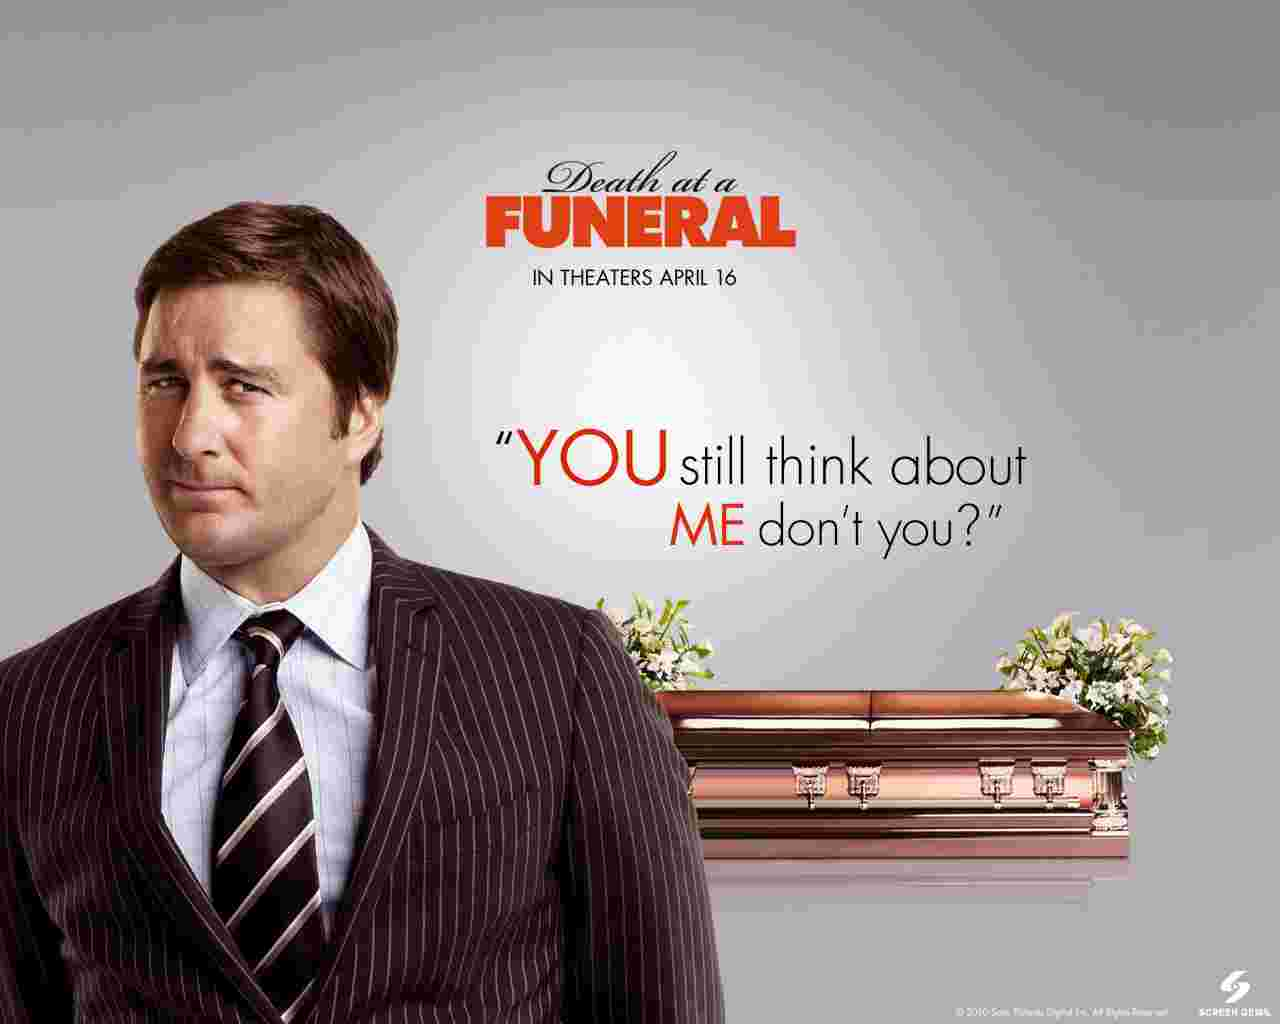 10 Luke Wilson in Death at a Funeral wallpaper   Death at 1280x1024